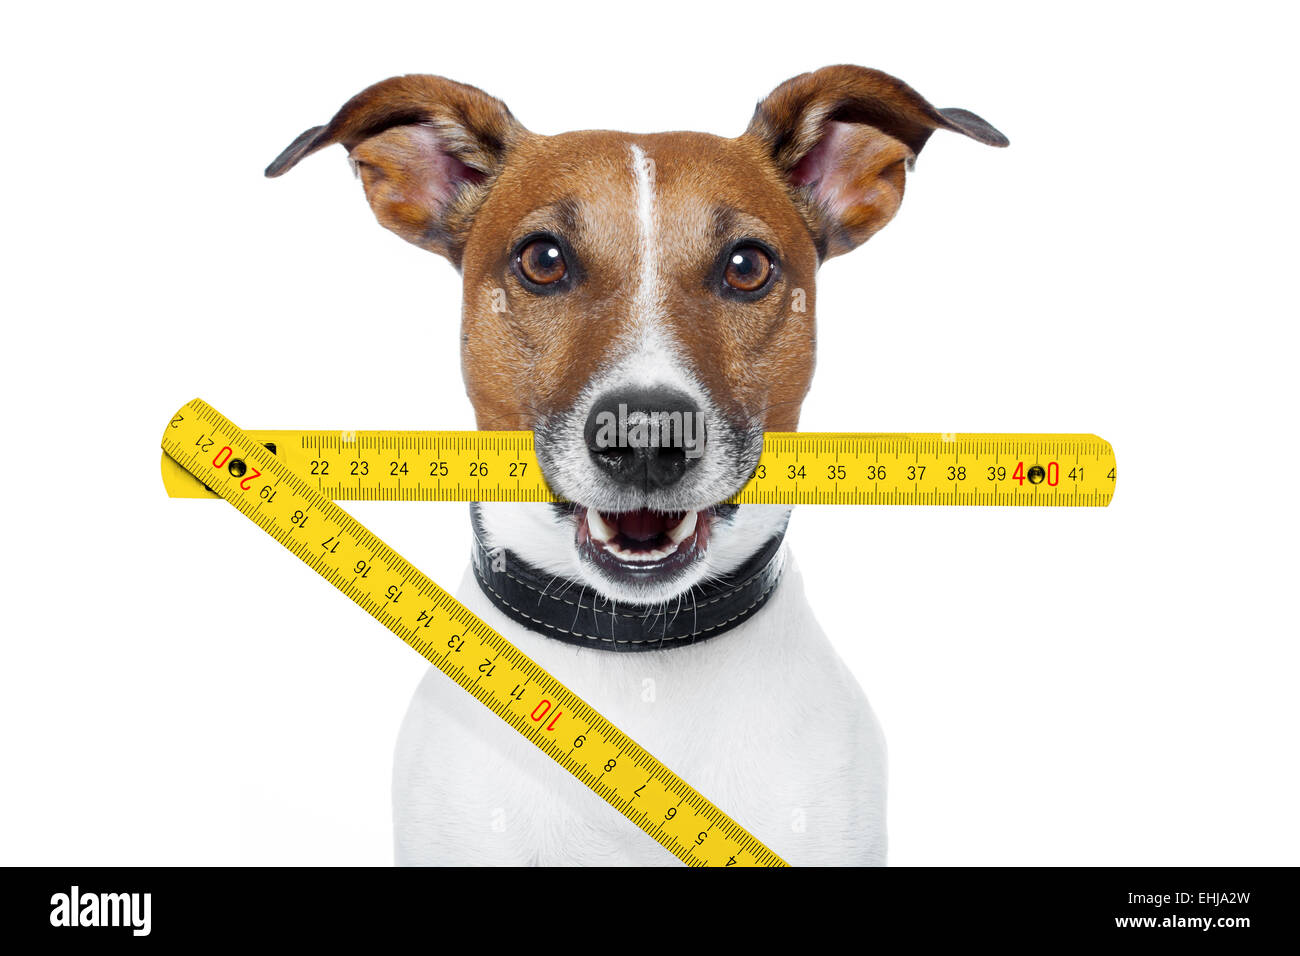 handyman dog with a yellow folding ruler - Stock Image